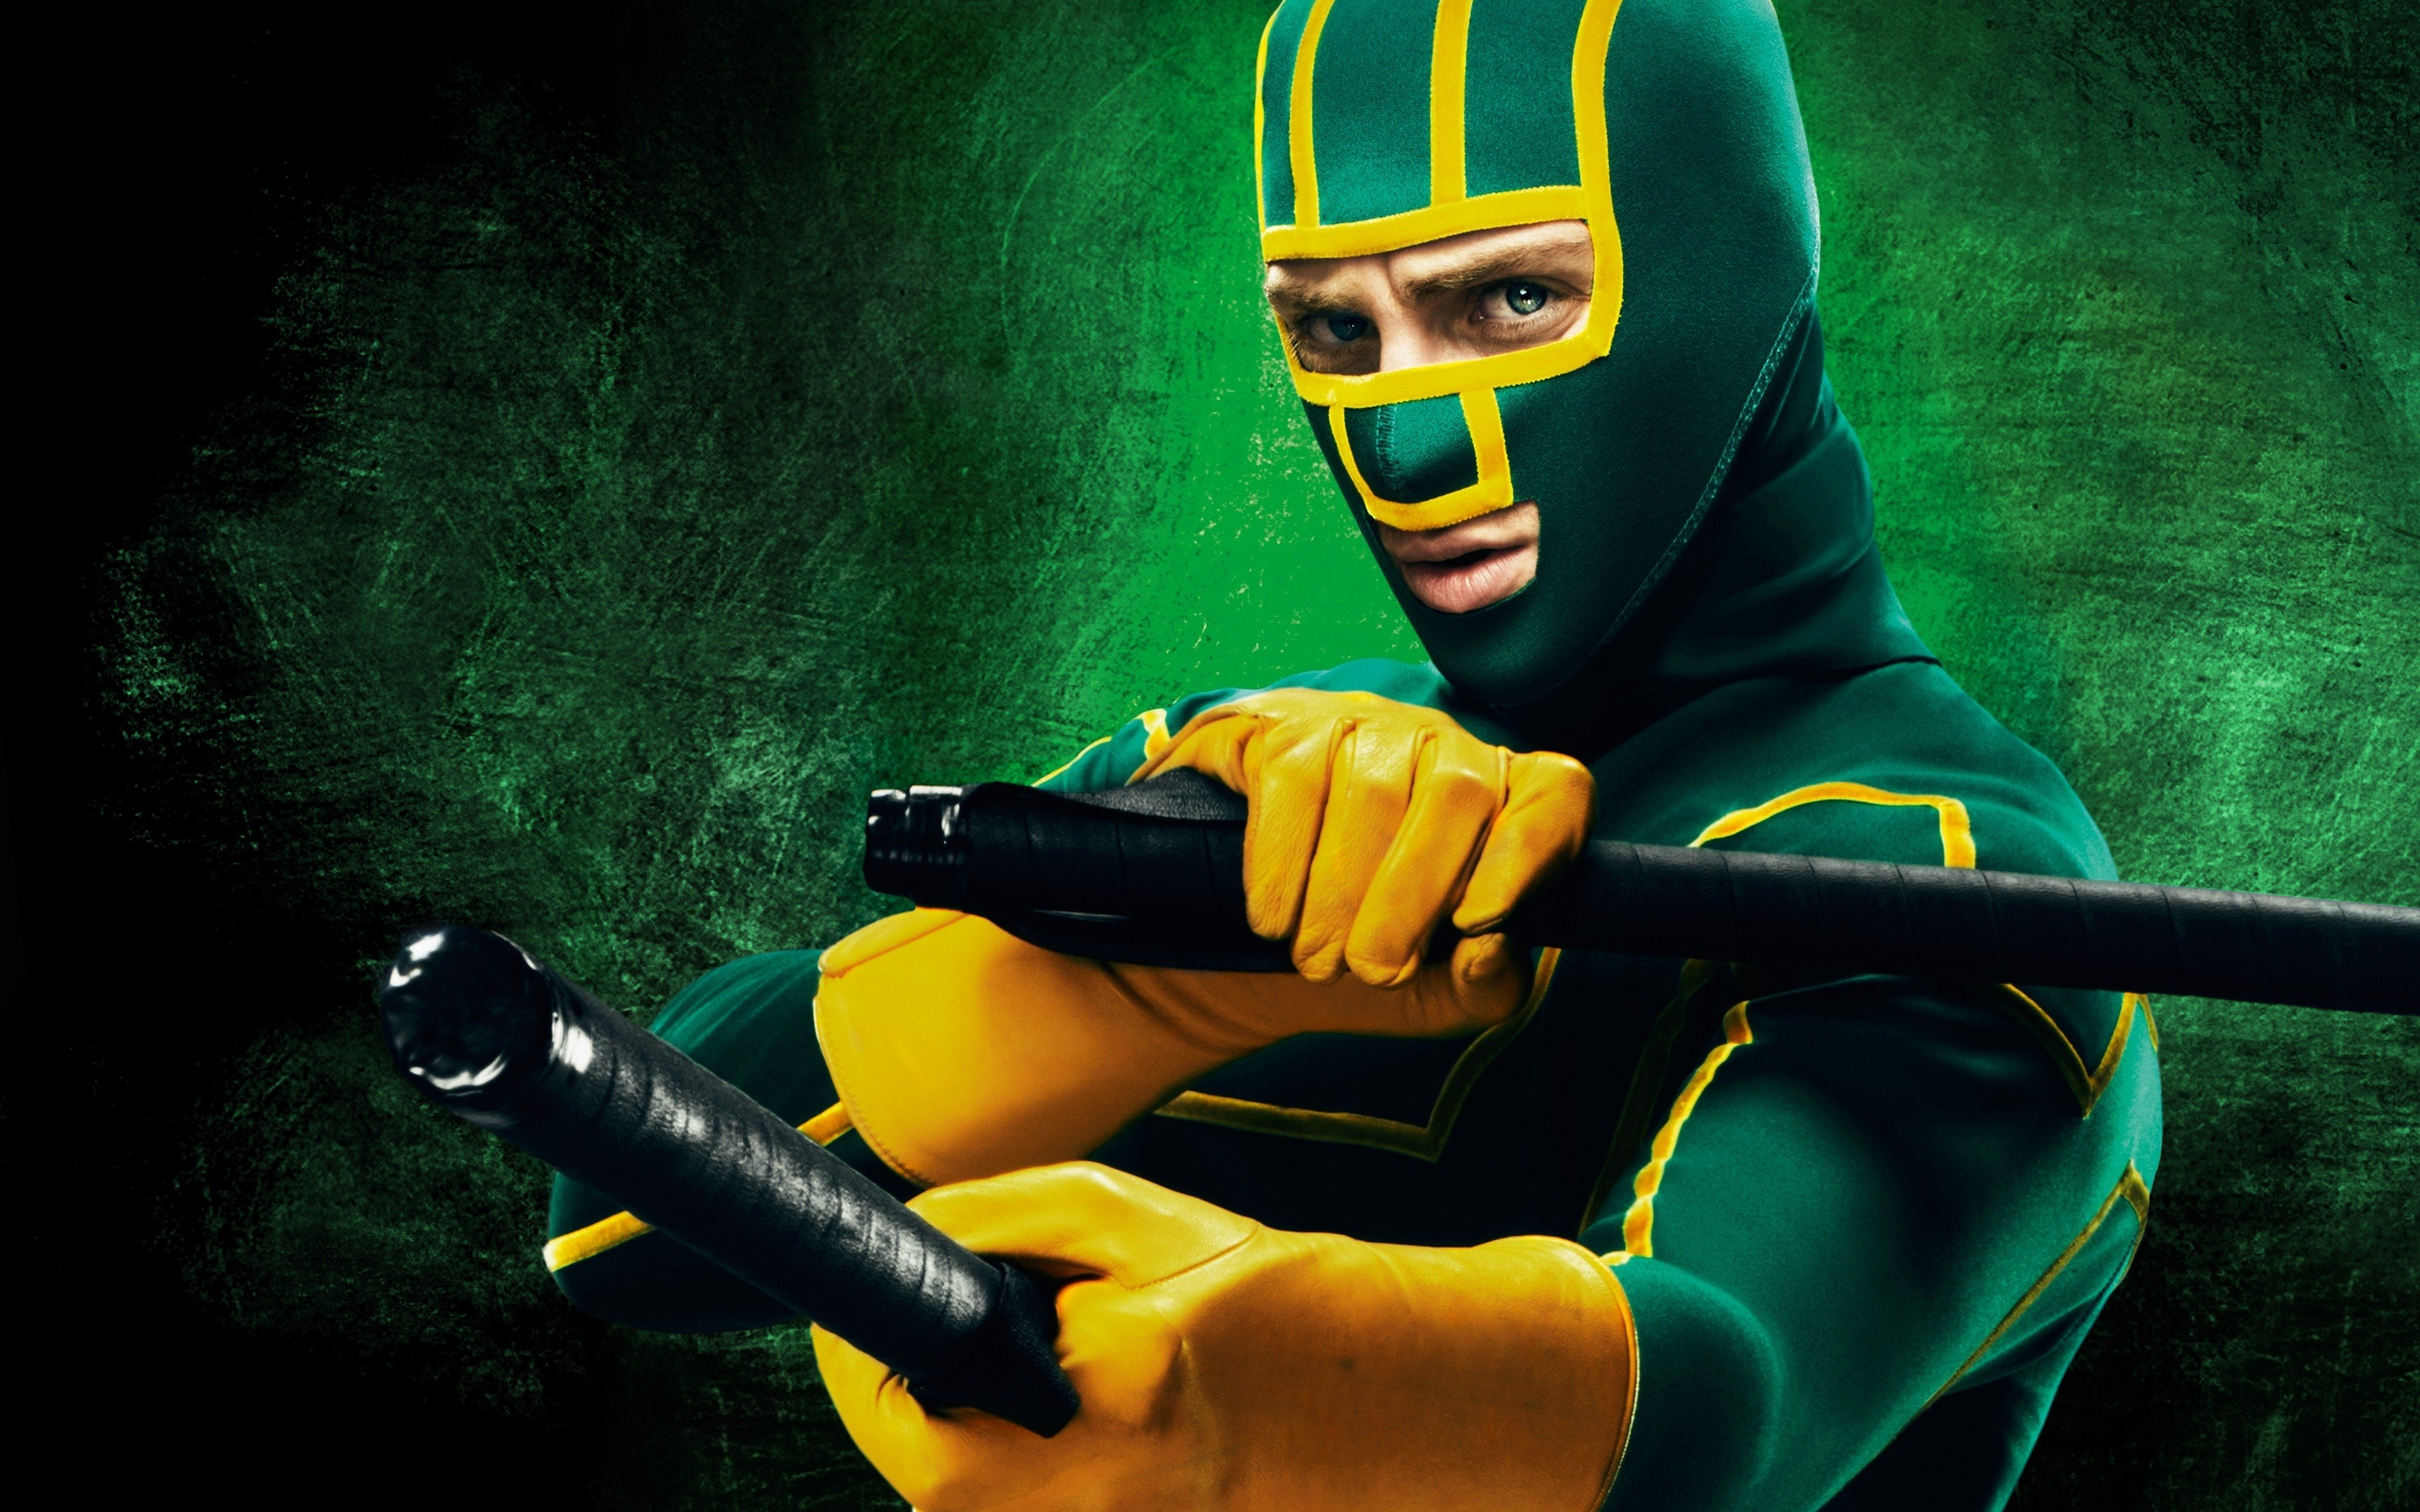 Love Wallpaper Kickass : Dave Lizewski Kick Ass 2 Movie, HD Movies, 4k Wallpapers ...